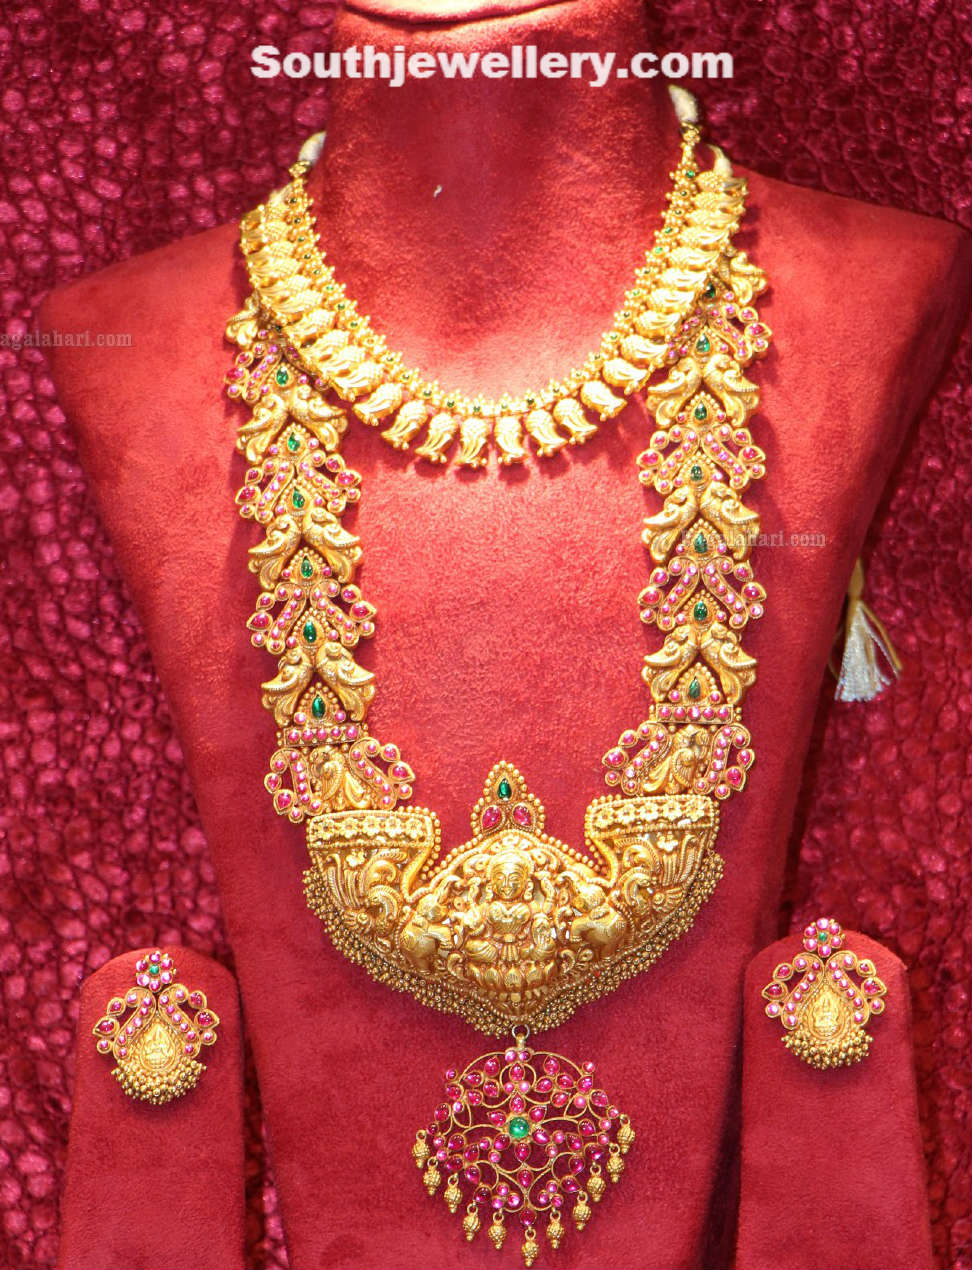 Latest gold necklace designs in grams pachi necklace latest jewellery - Temple Jewellery Set By Cmr Simple Temple Necklace